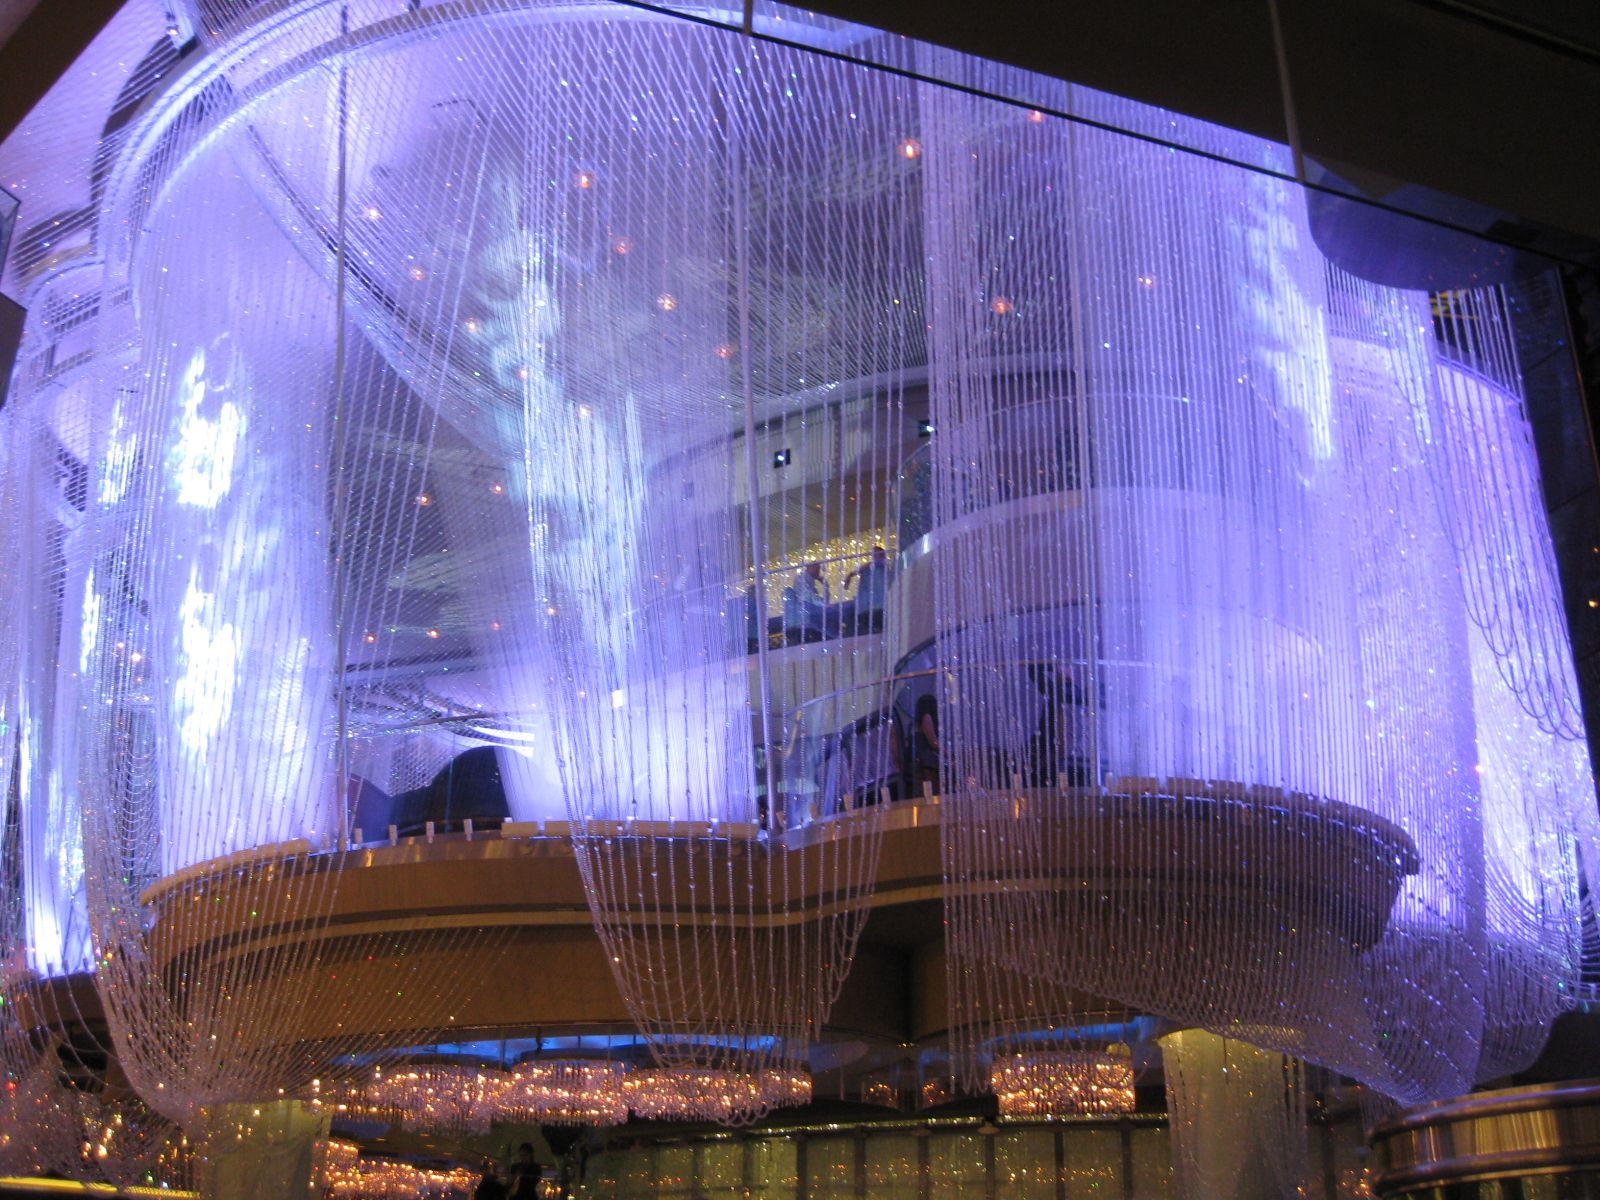 Chandelier bar aria las vegas nv travel pinterest vegas chandelier bar aria las vegas nv arubaitofo Image collections